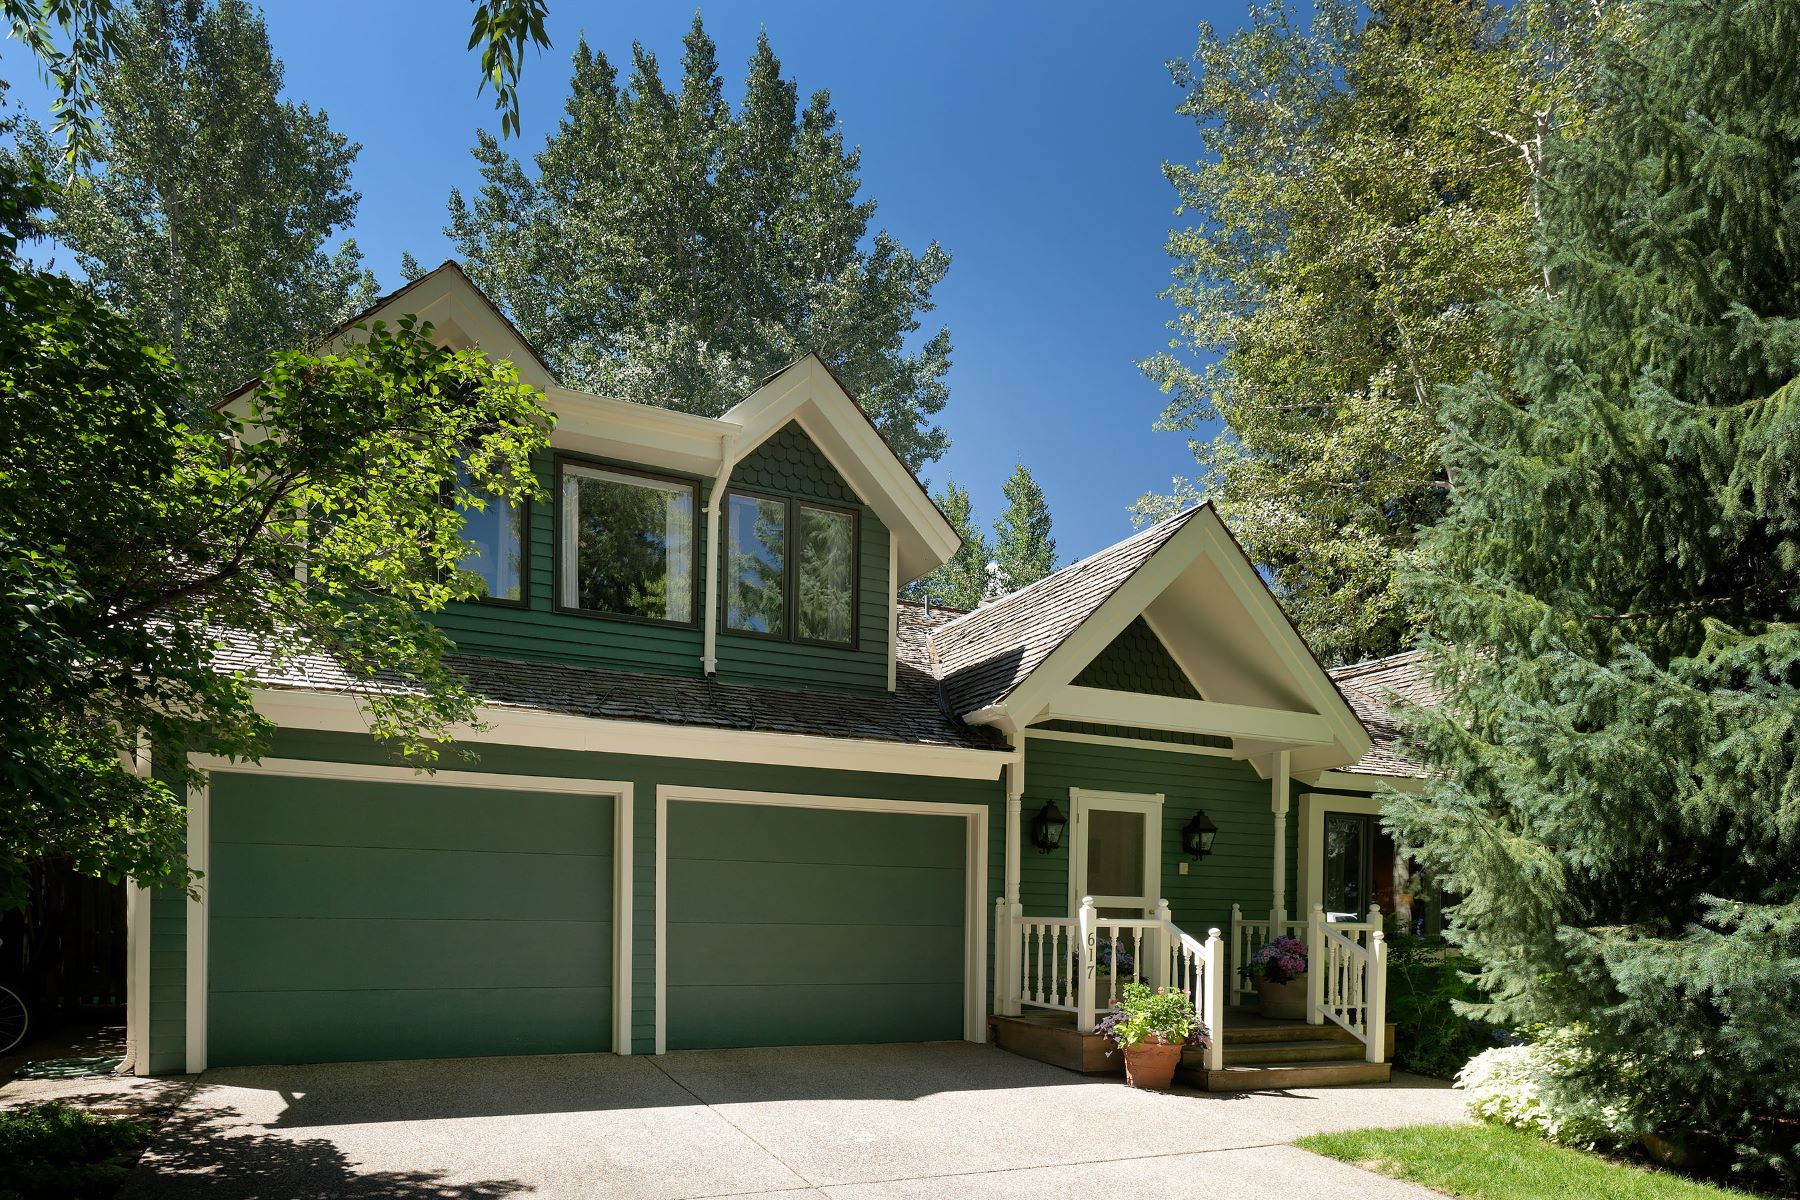 Single Family Home for Sale at Great Value in the West End 617 West Bleeker Street Aspen, Colorado 81611 United States